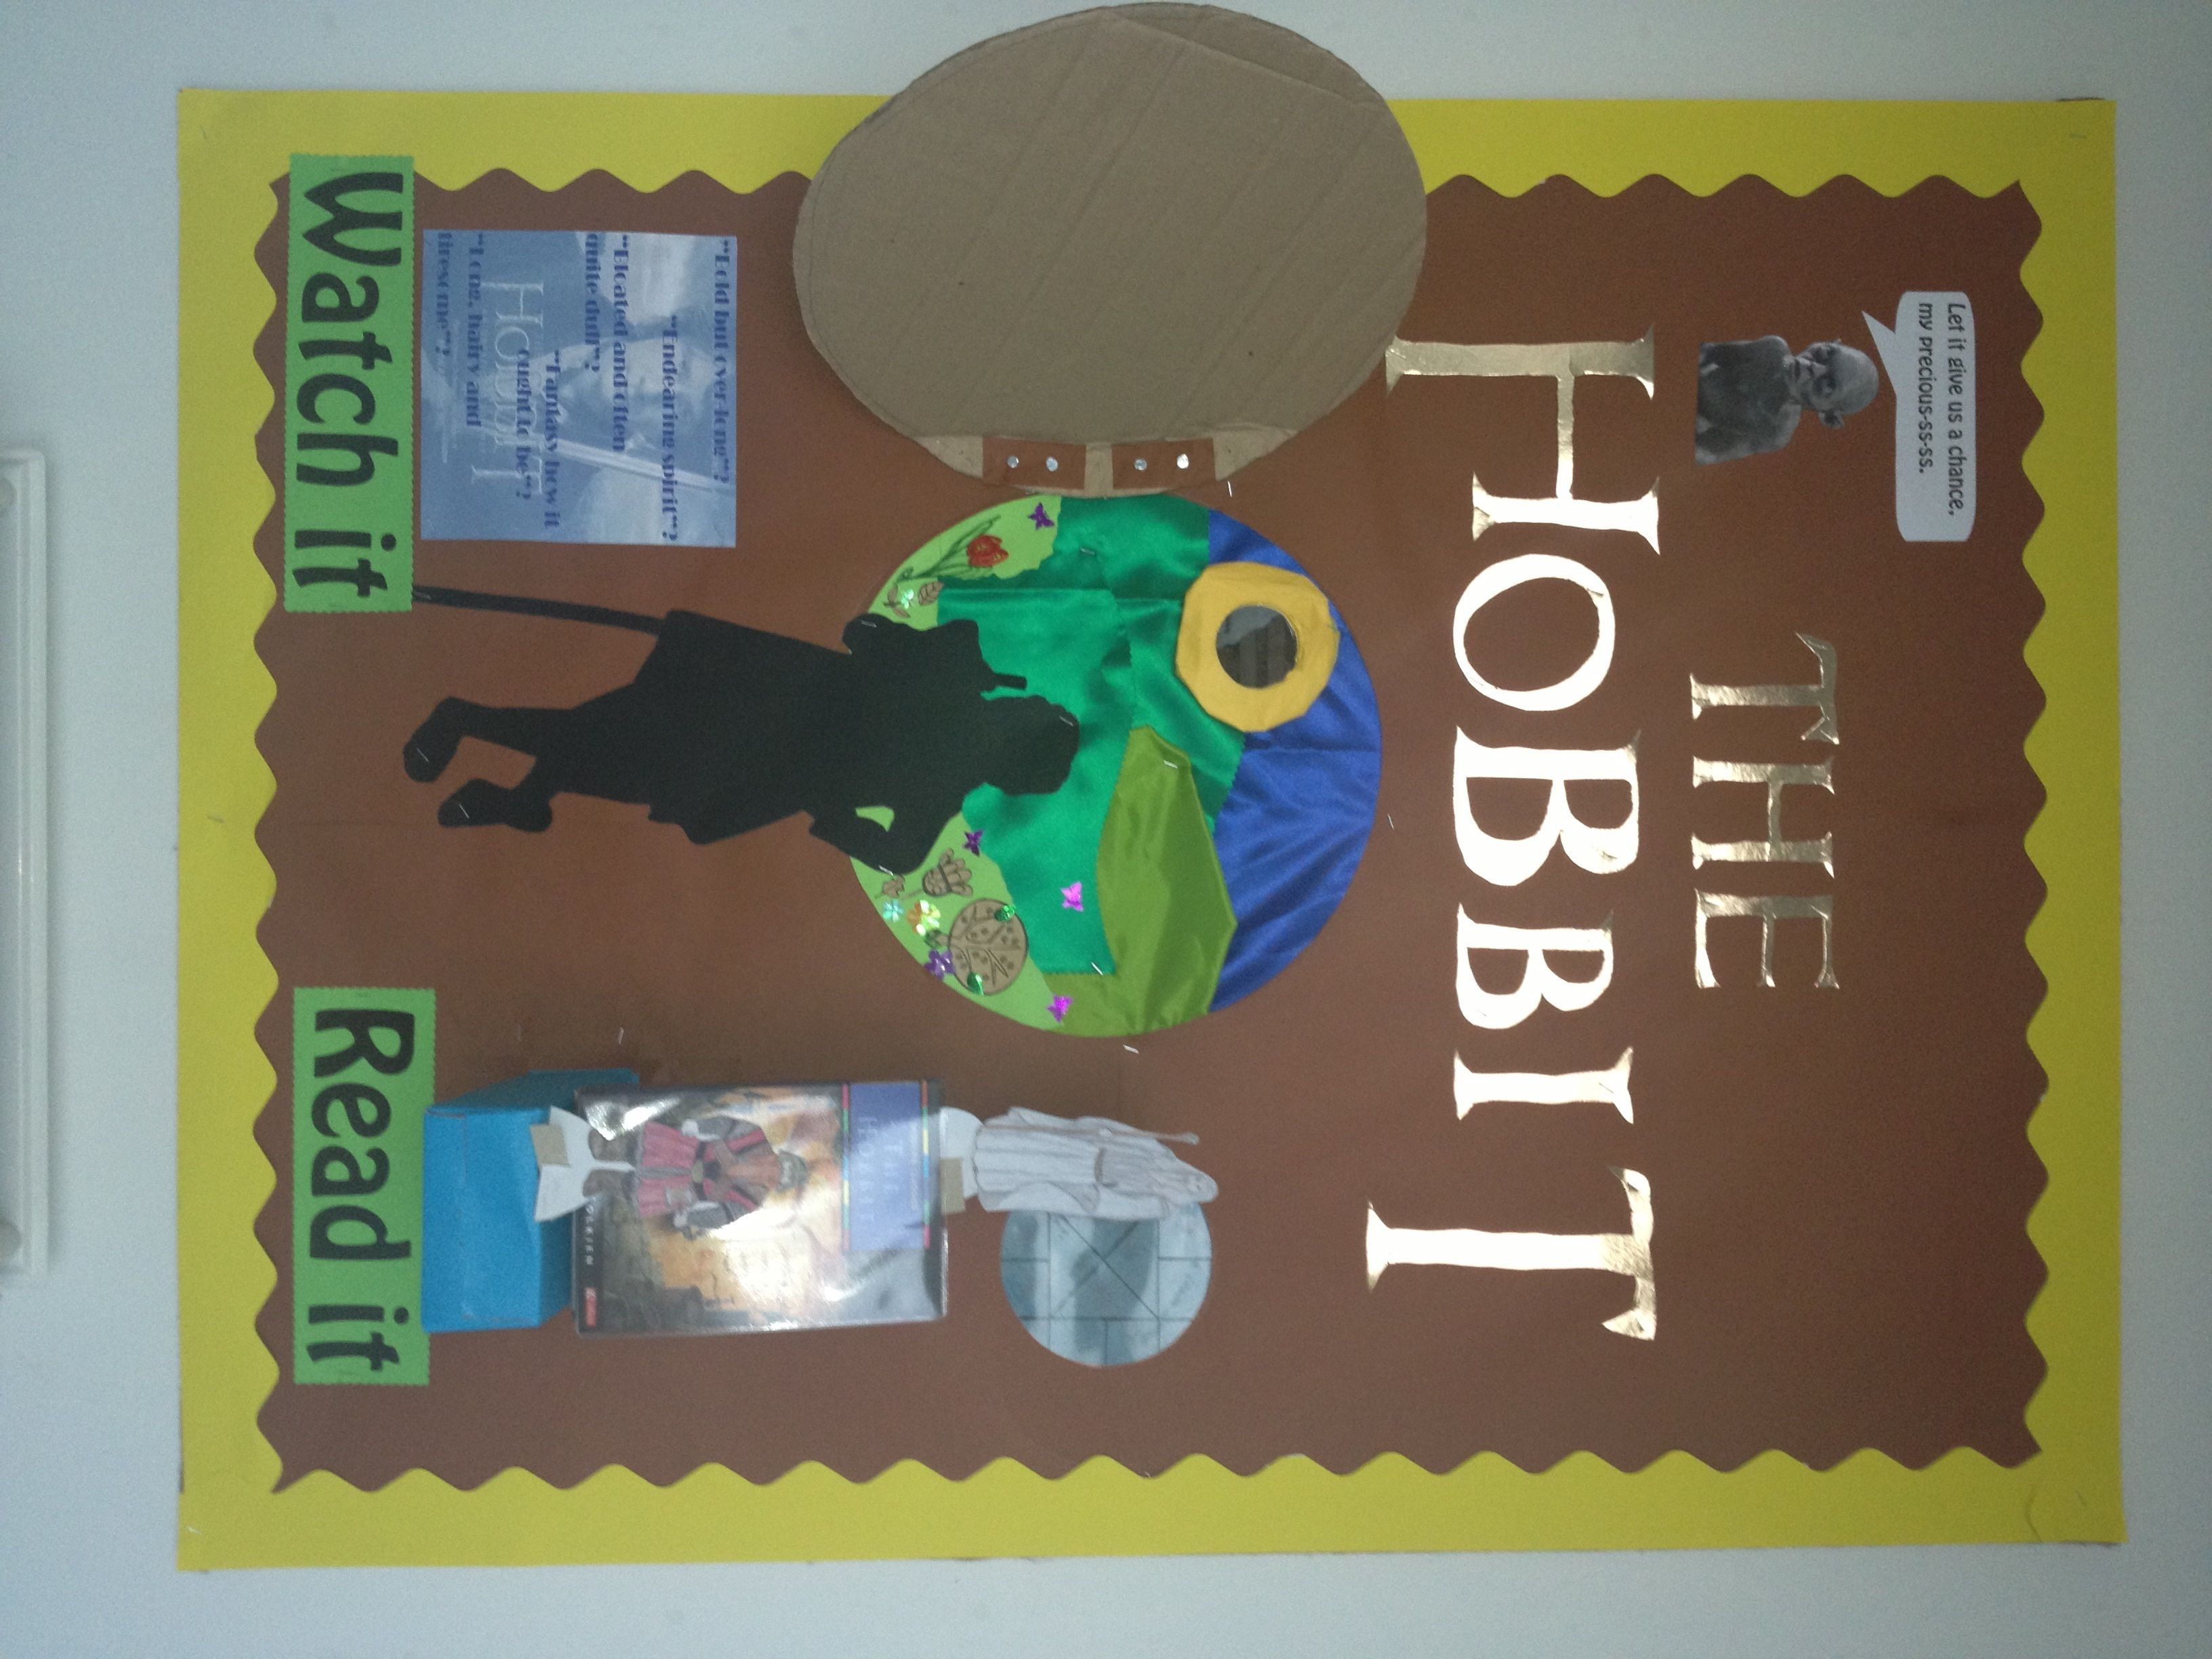 the hobbit bulletin board bulletin boards bulletin i made this display when the hobbit film came out at the cinema i included